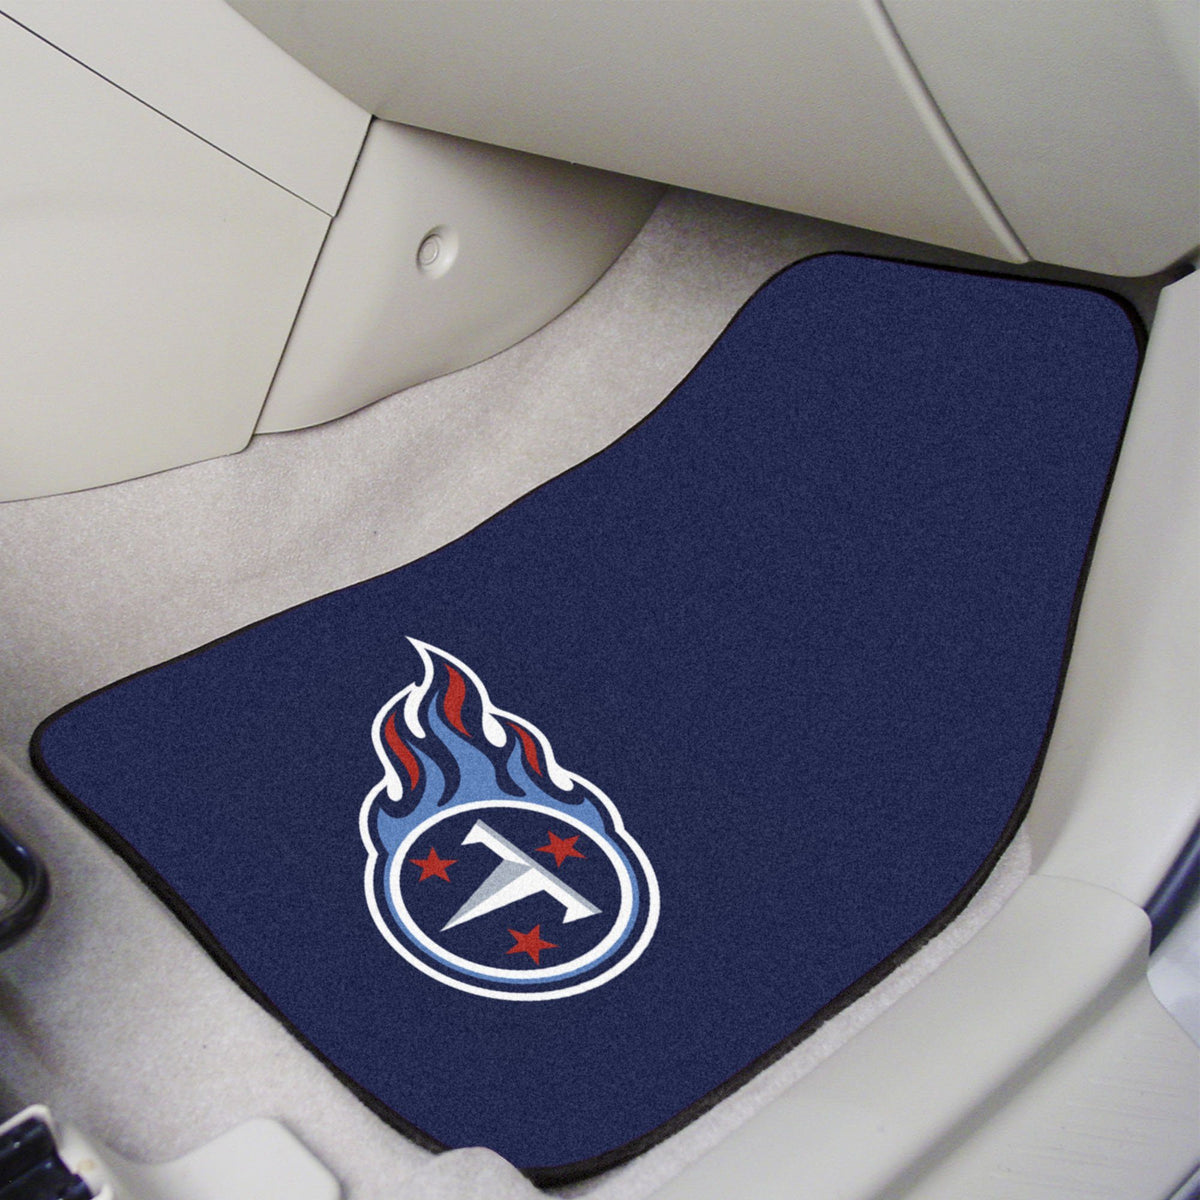 "NFL - 2-pc Carpet Car Mat Set, 17"" x 27"" NFL Mats, Front Car Mats, 2-pc Carpet Car Mat Set, NFL, Auto Fan Mats Tennessee Titans"